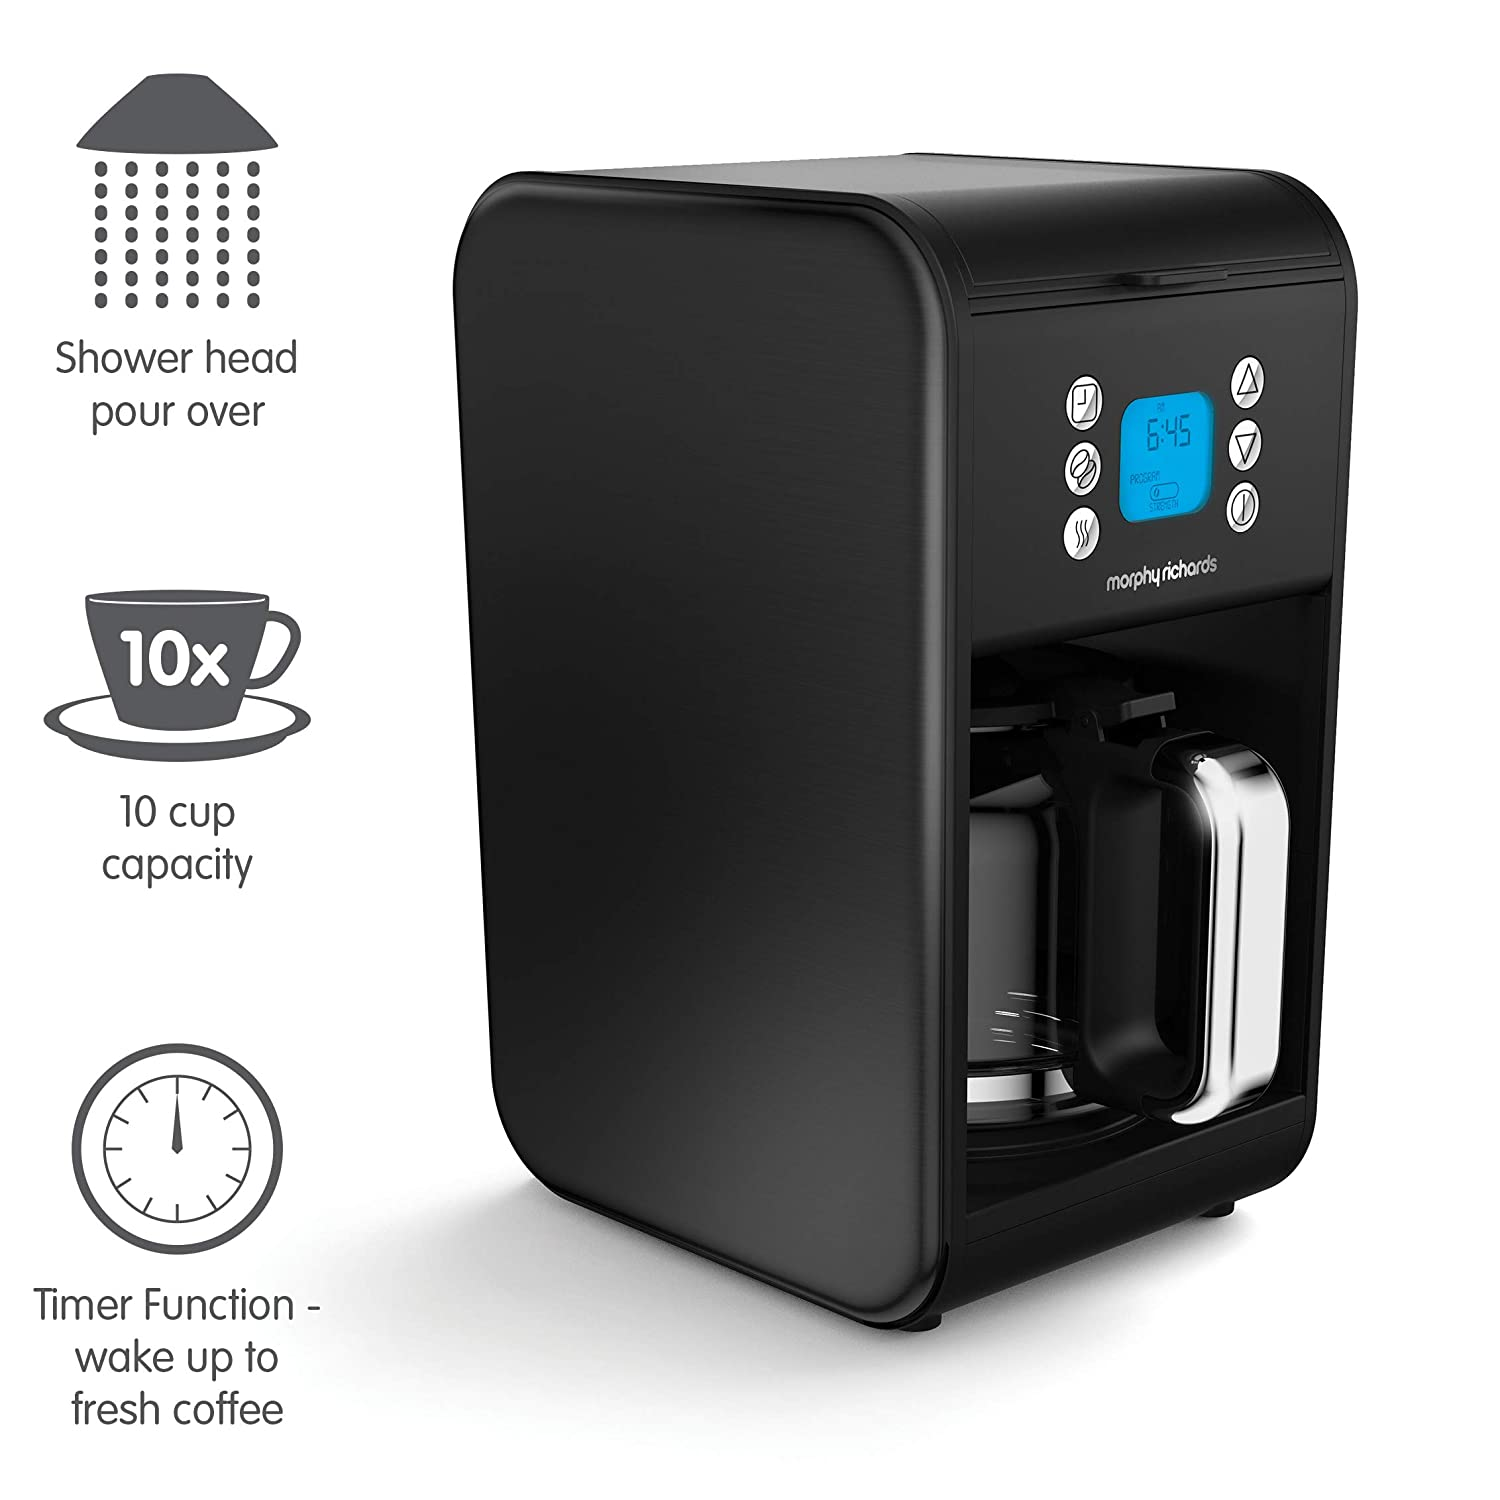 Morphy Richards Accents Independiente - Cafetera (Independiente, Cafetera combinada, 1,8 L, De café molido, 900 W, Negro)